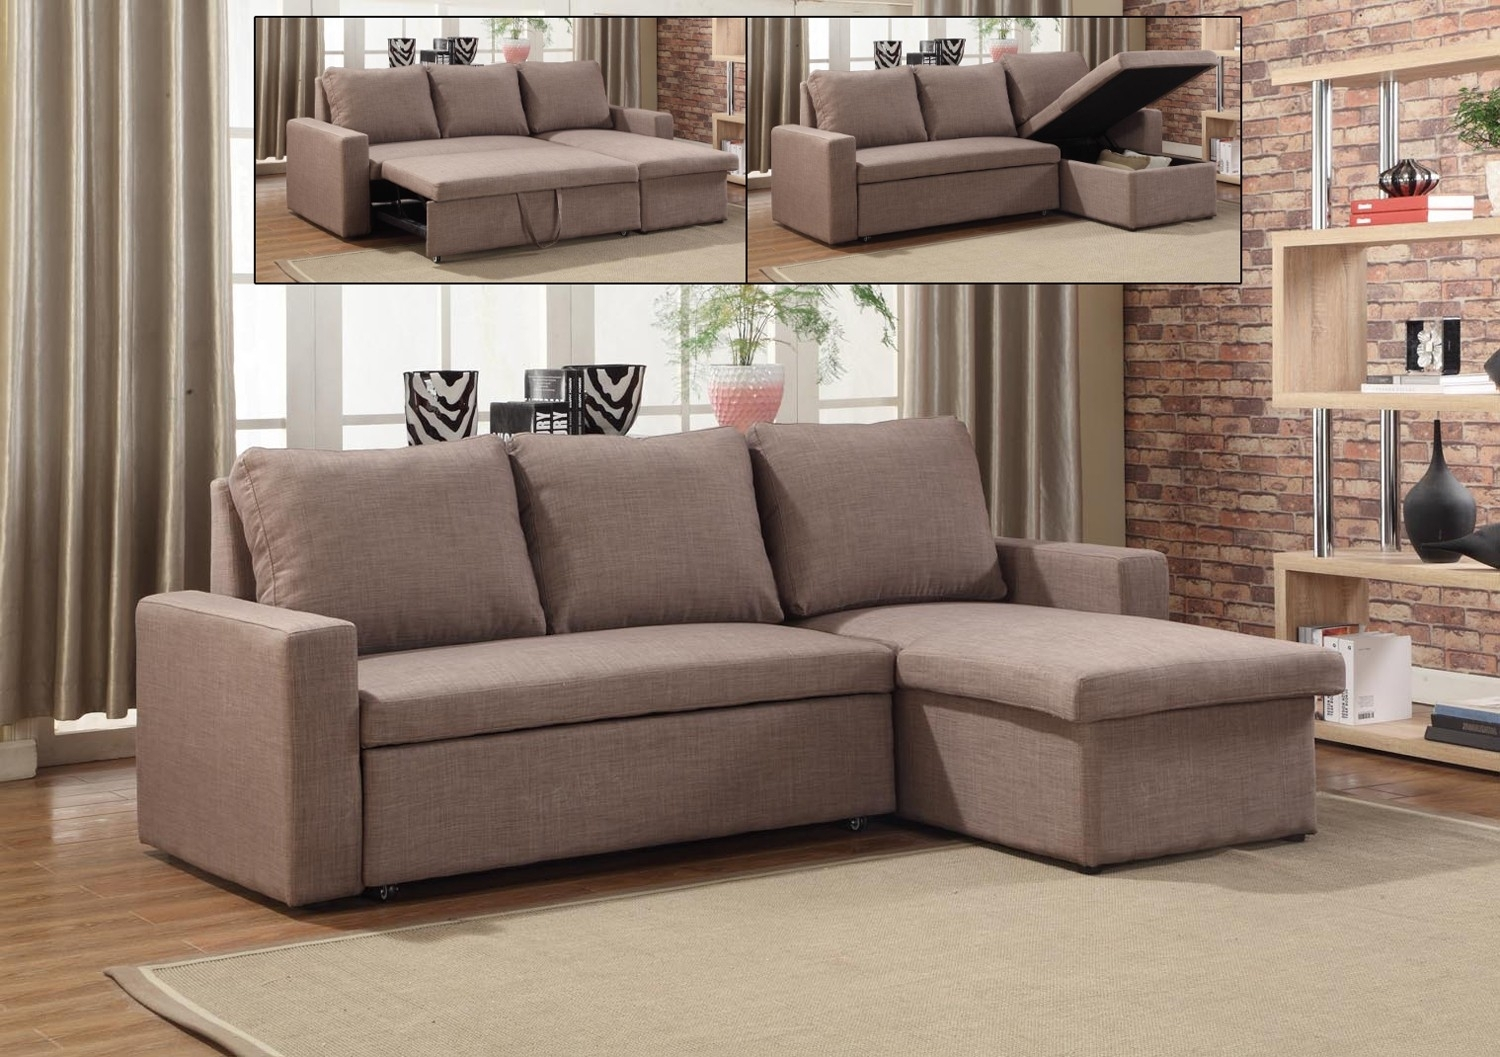 If 9001  Sectional Sofa Bed With Reversible Chaise – Lowest Price In Sectional Sofas At Brampton (Image 3 of 10)